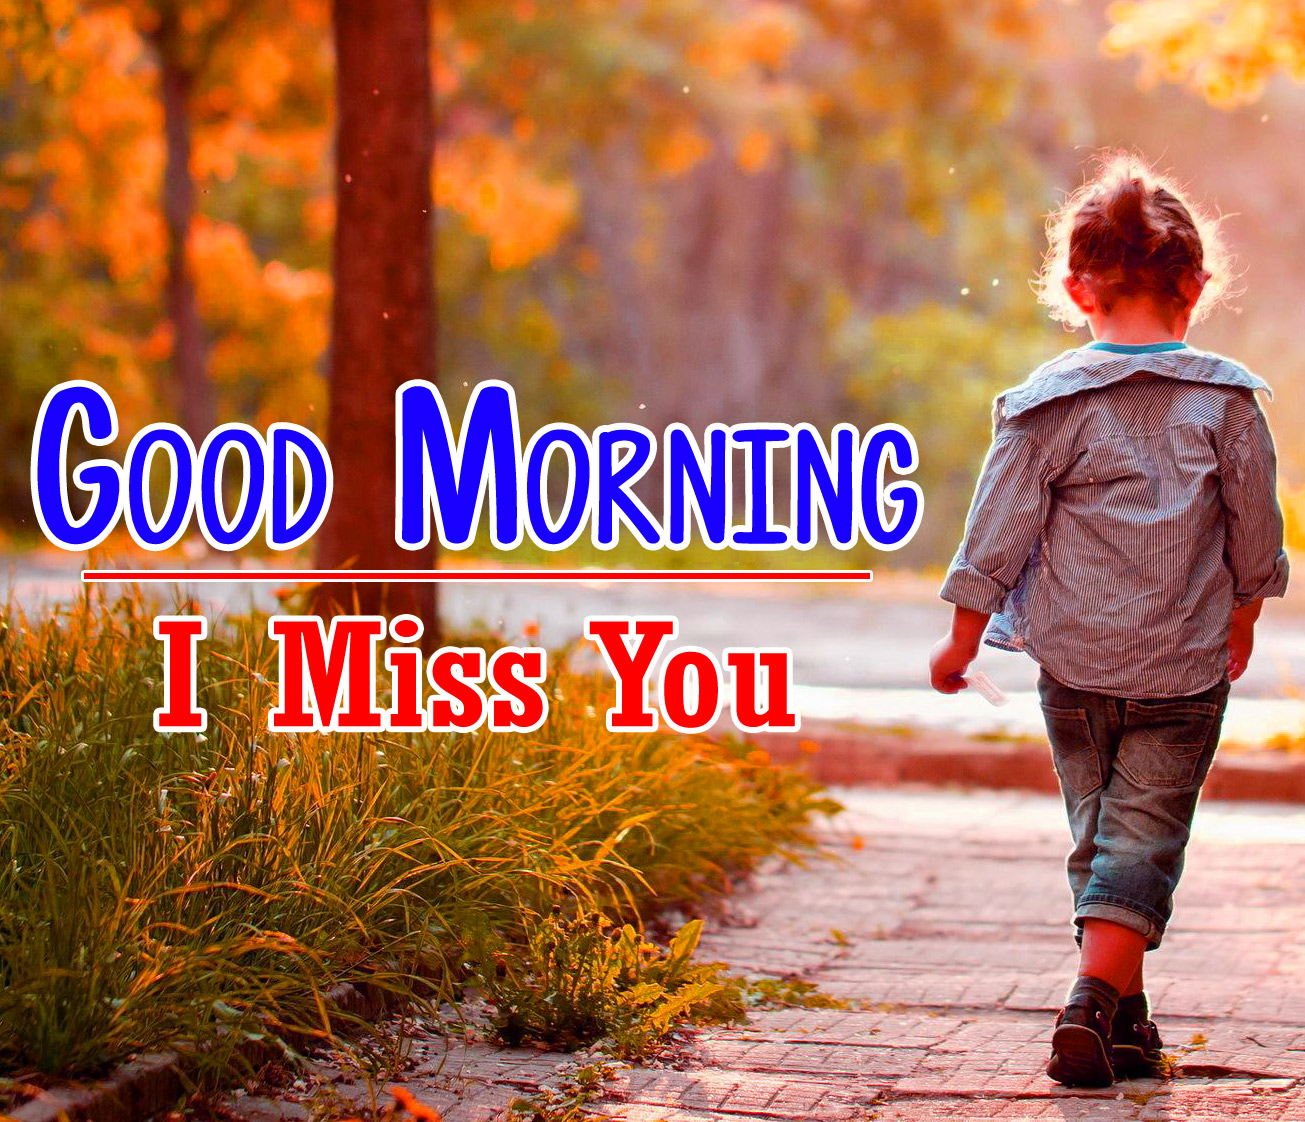 Special Good Morning Images